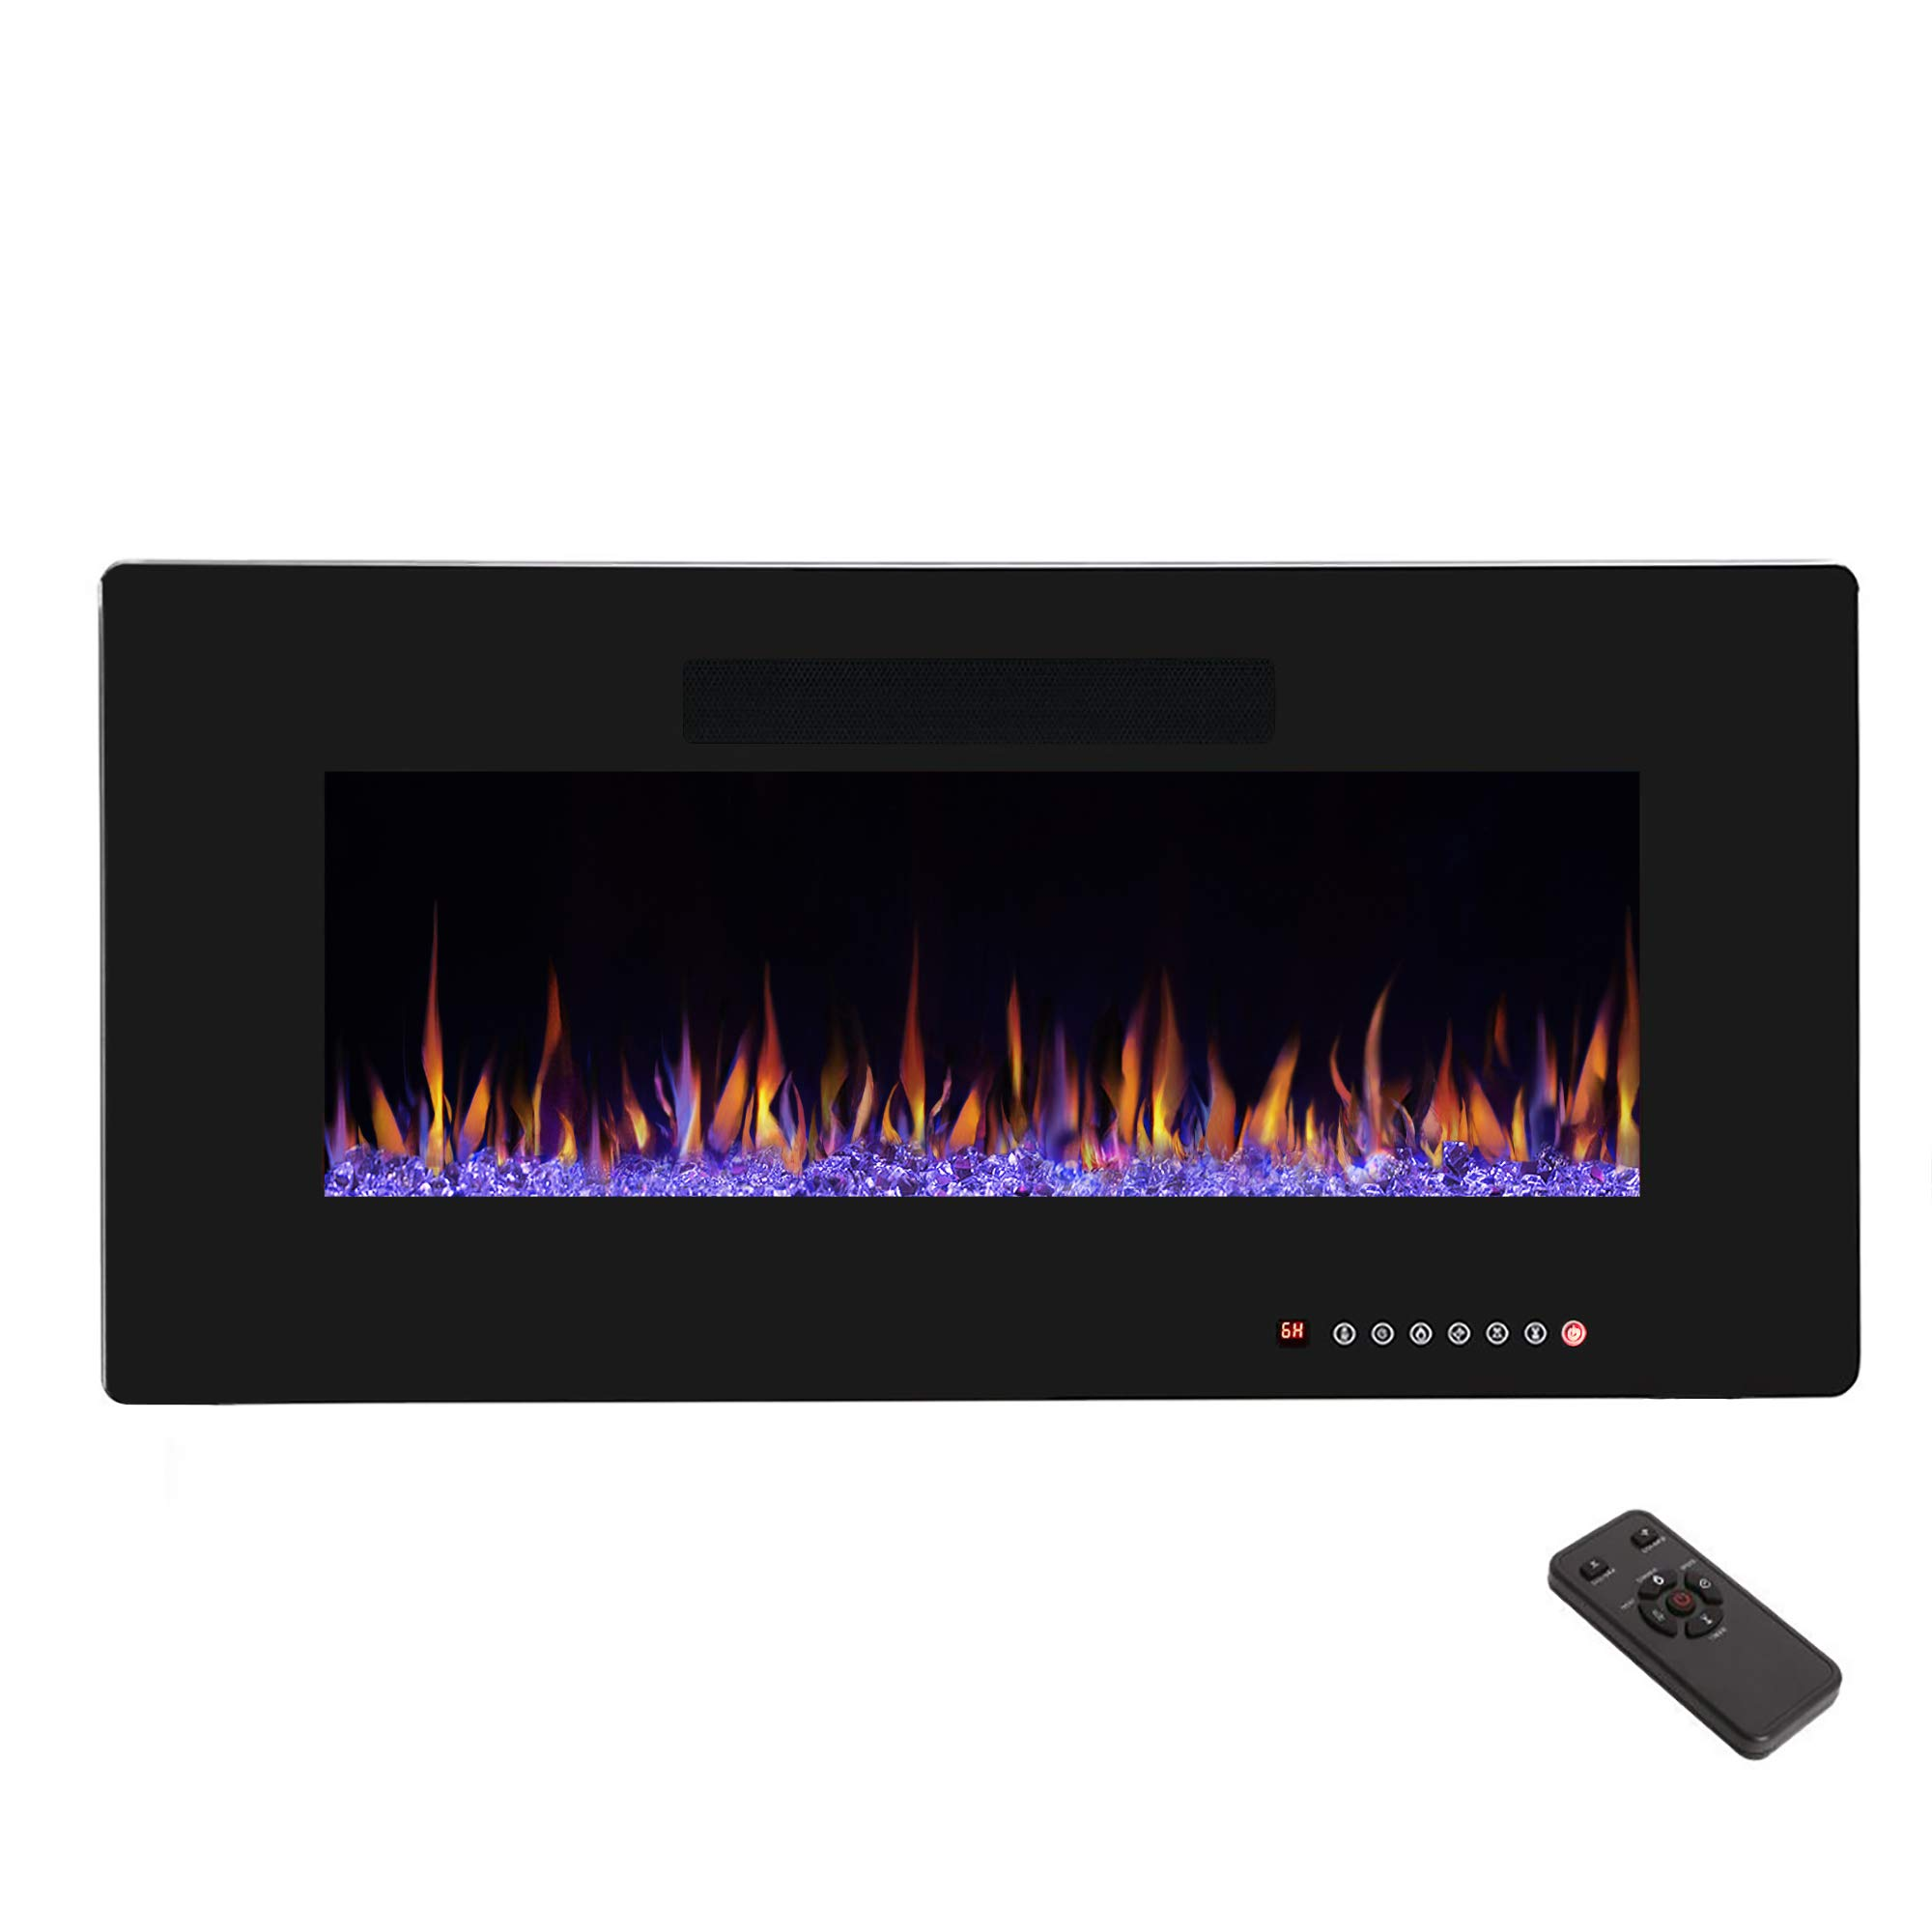 R.W.FLAME 36'' Electric Fireplace, Recessed Wall Mounted and In-wall Fireplace Heater, Fit for 2 x 4 and 2 x 6 Stud, Remote Control with Timer,Touch Screen,Adjustable Flame Color and Speed, 750-1500W by R.W.FLAME